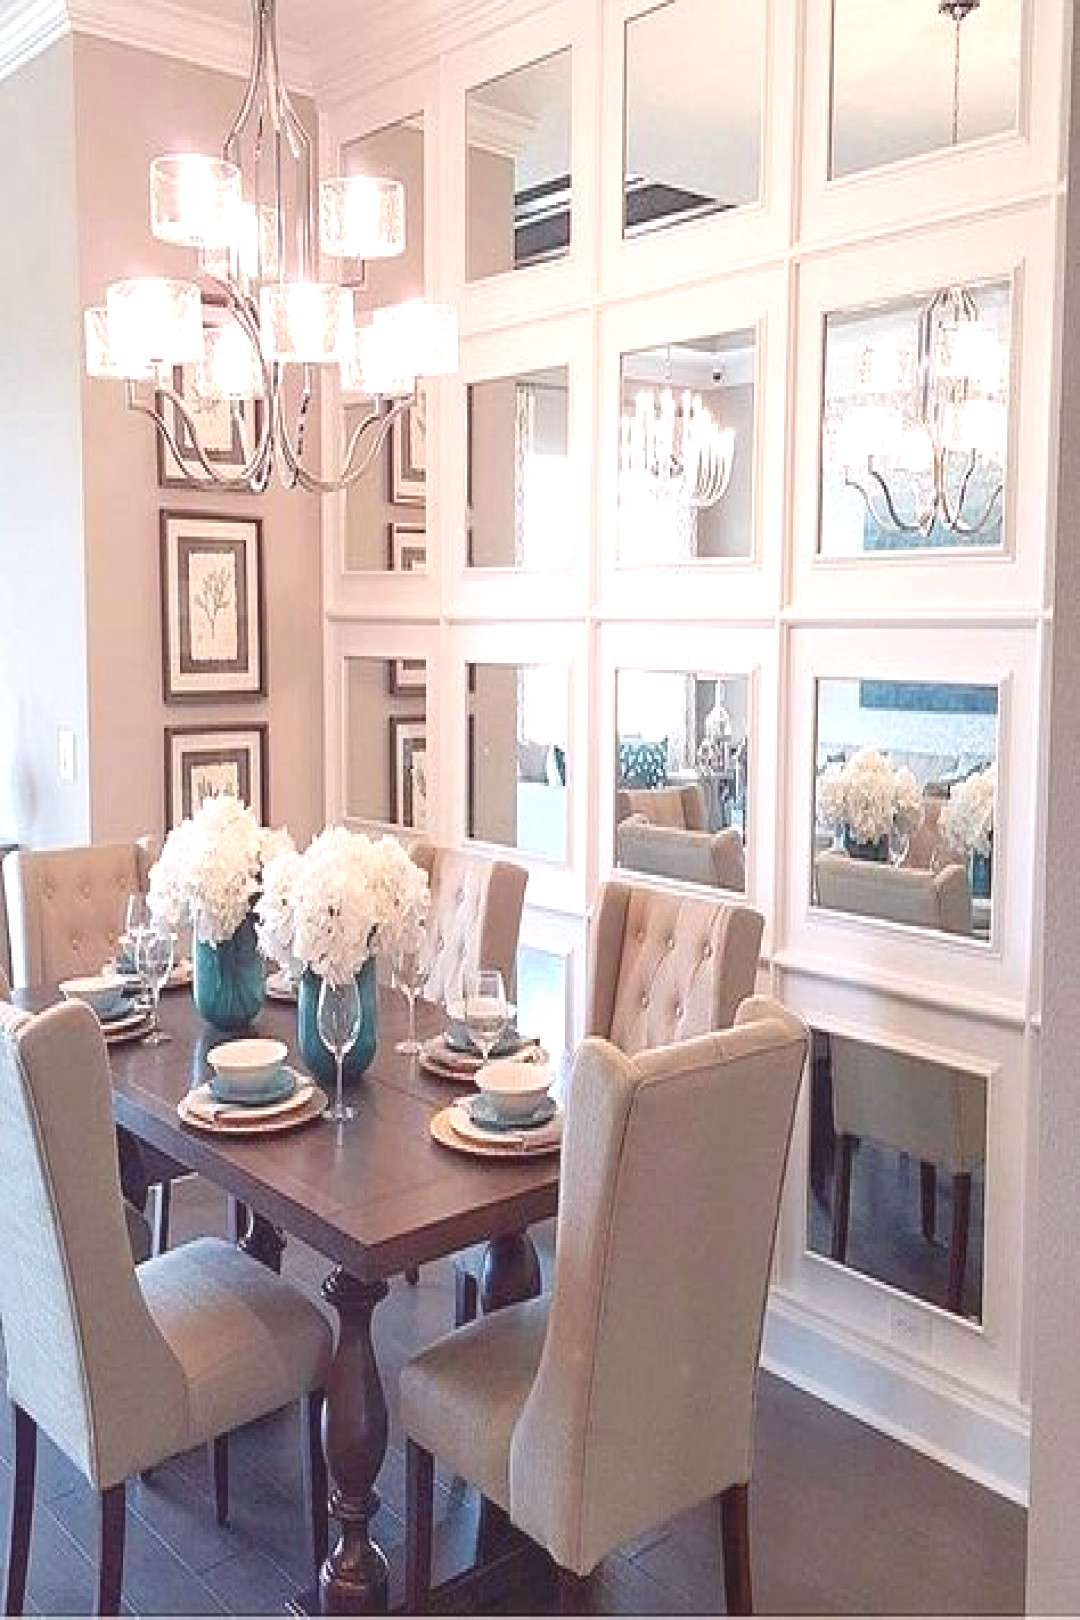 47 The Best Small Dining Room Design Ideas That You Can Try in Your Home